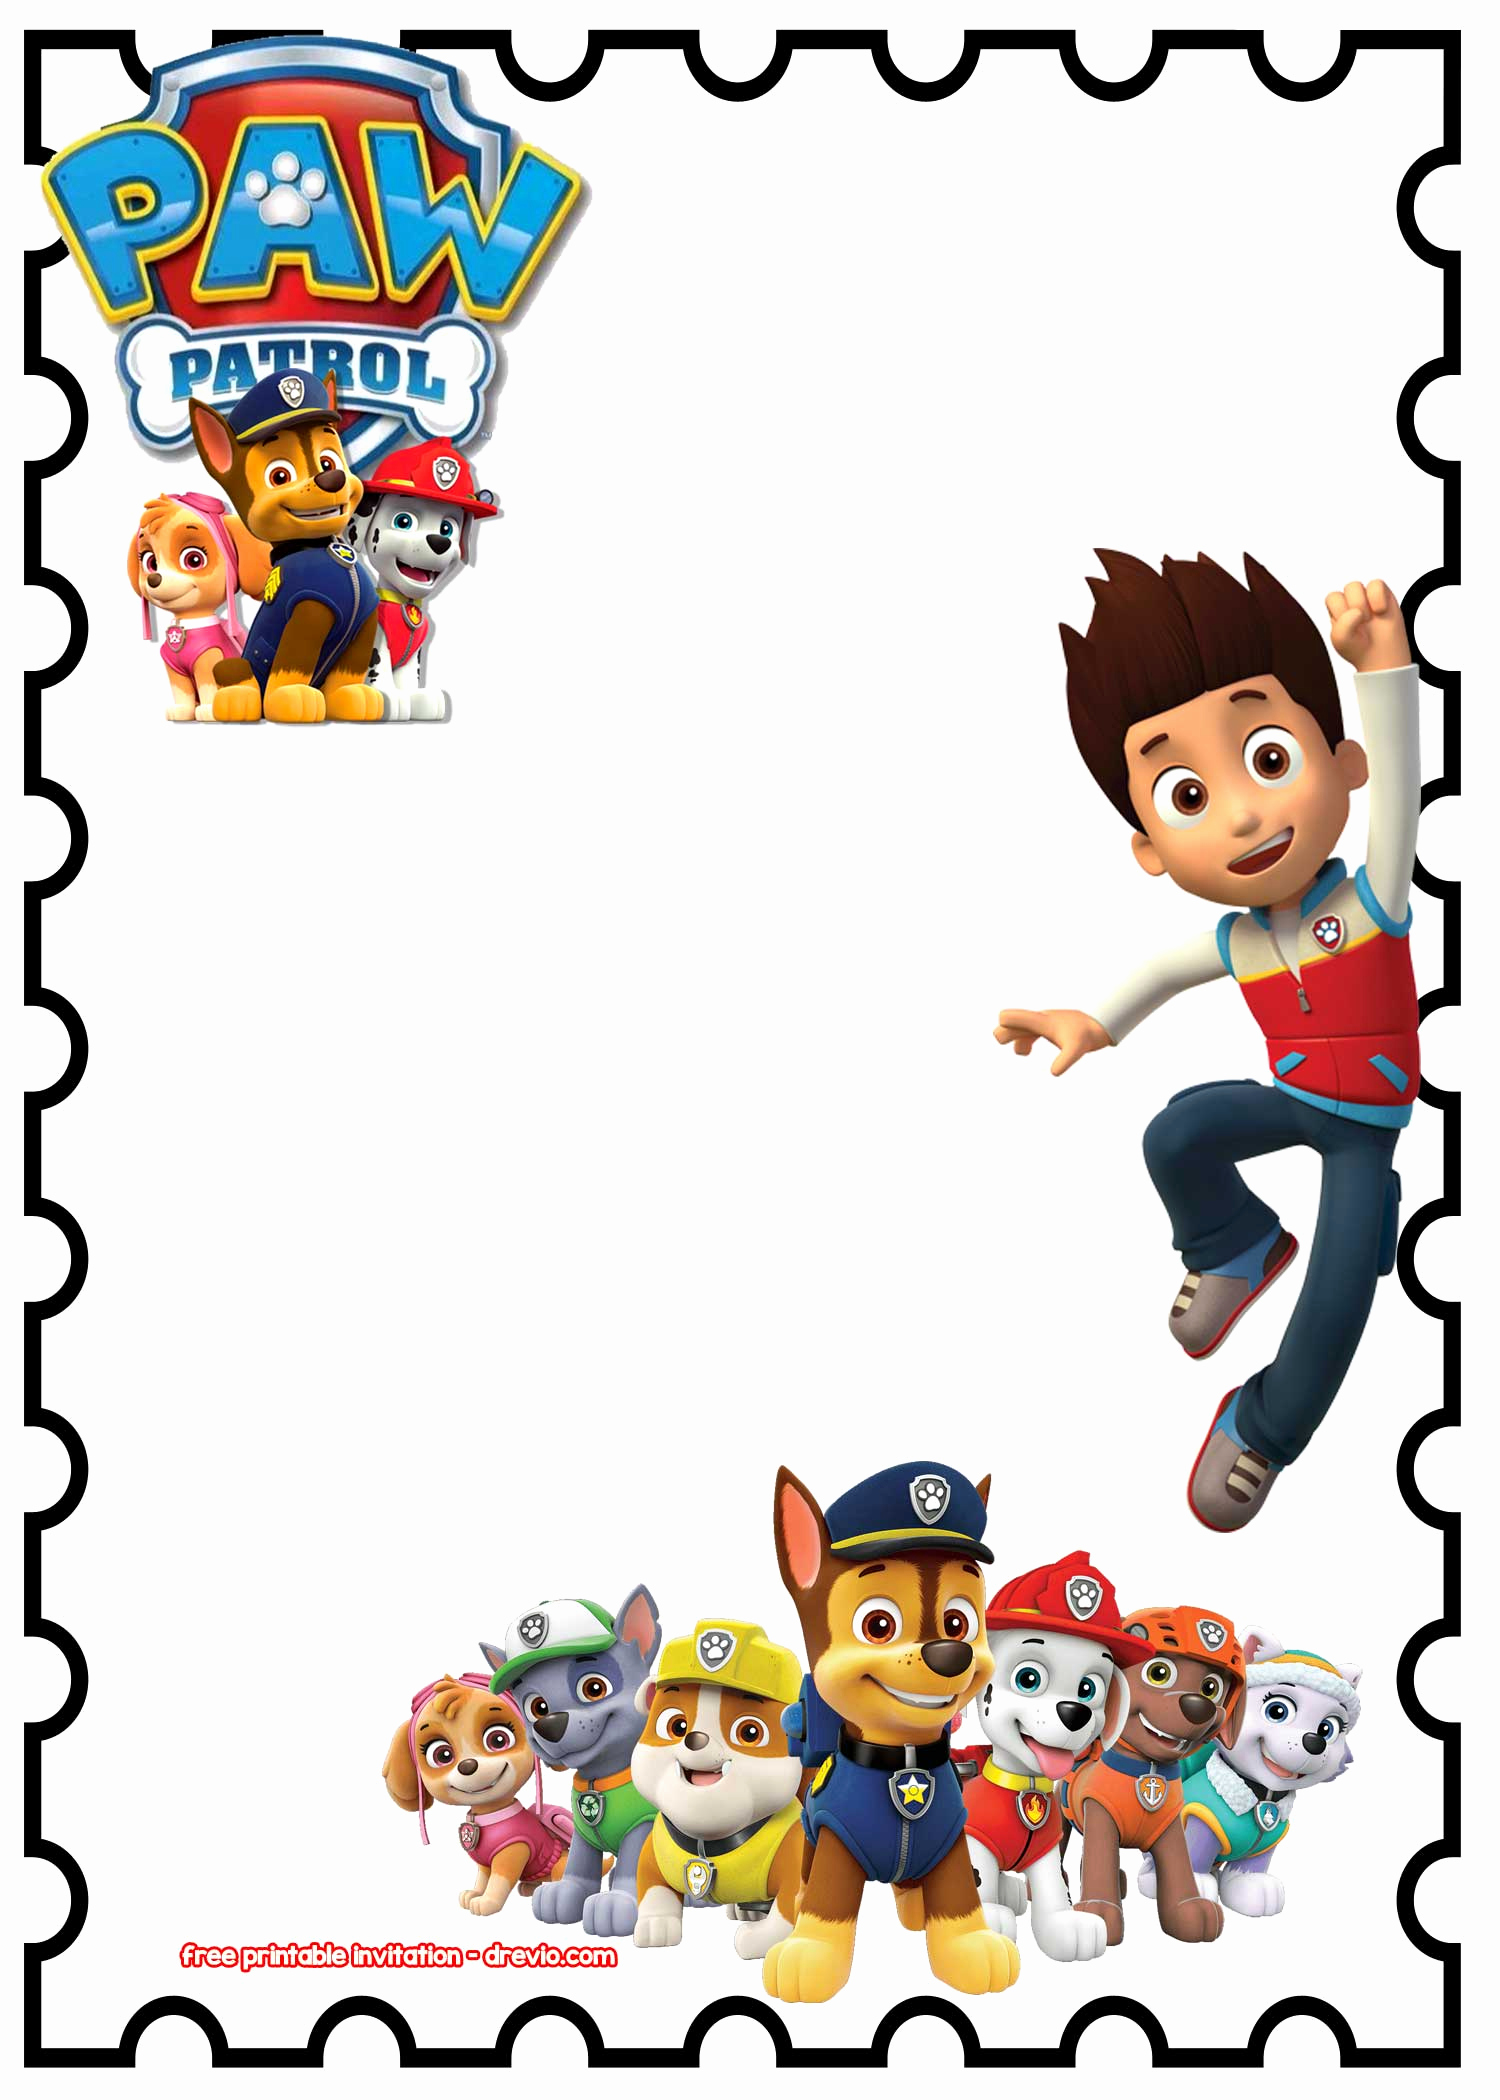 Paw Patrol Party Invitation Template Lovely Free Printable Paw Patrol Birthday Invitation Chalkboard